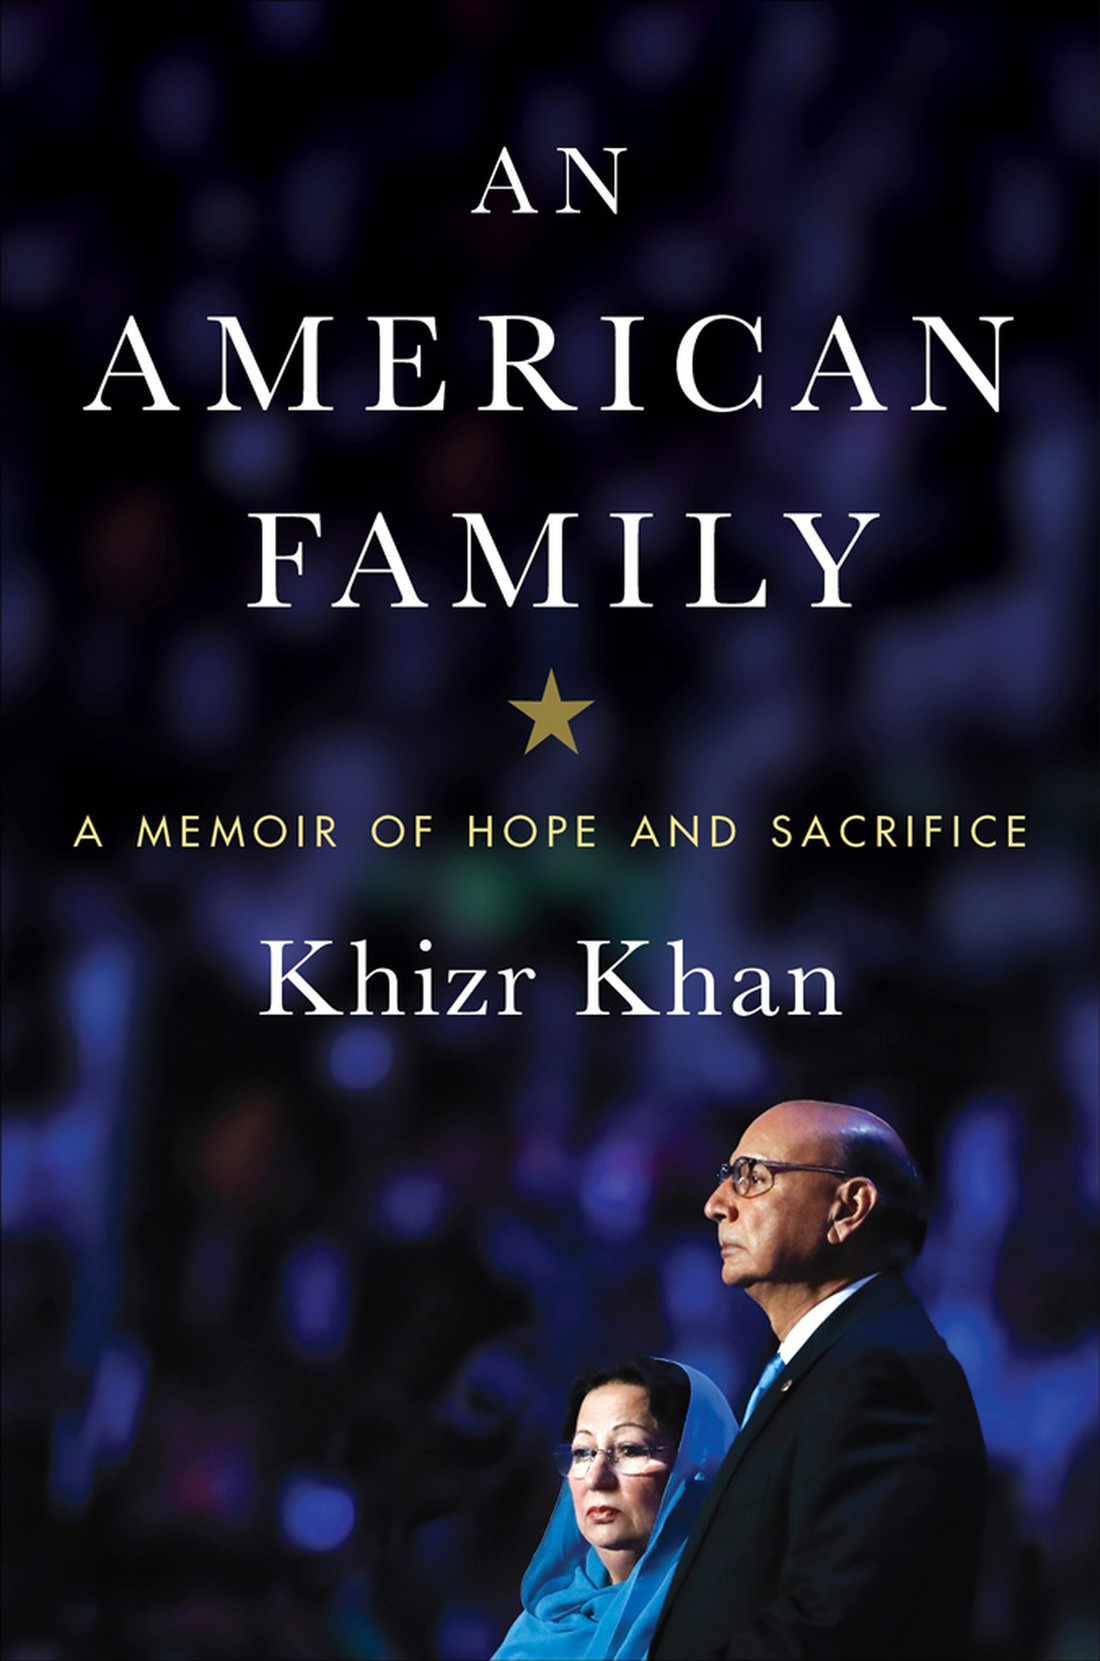 An American Family: A Memoir of Hope and Sacrifice book cover